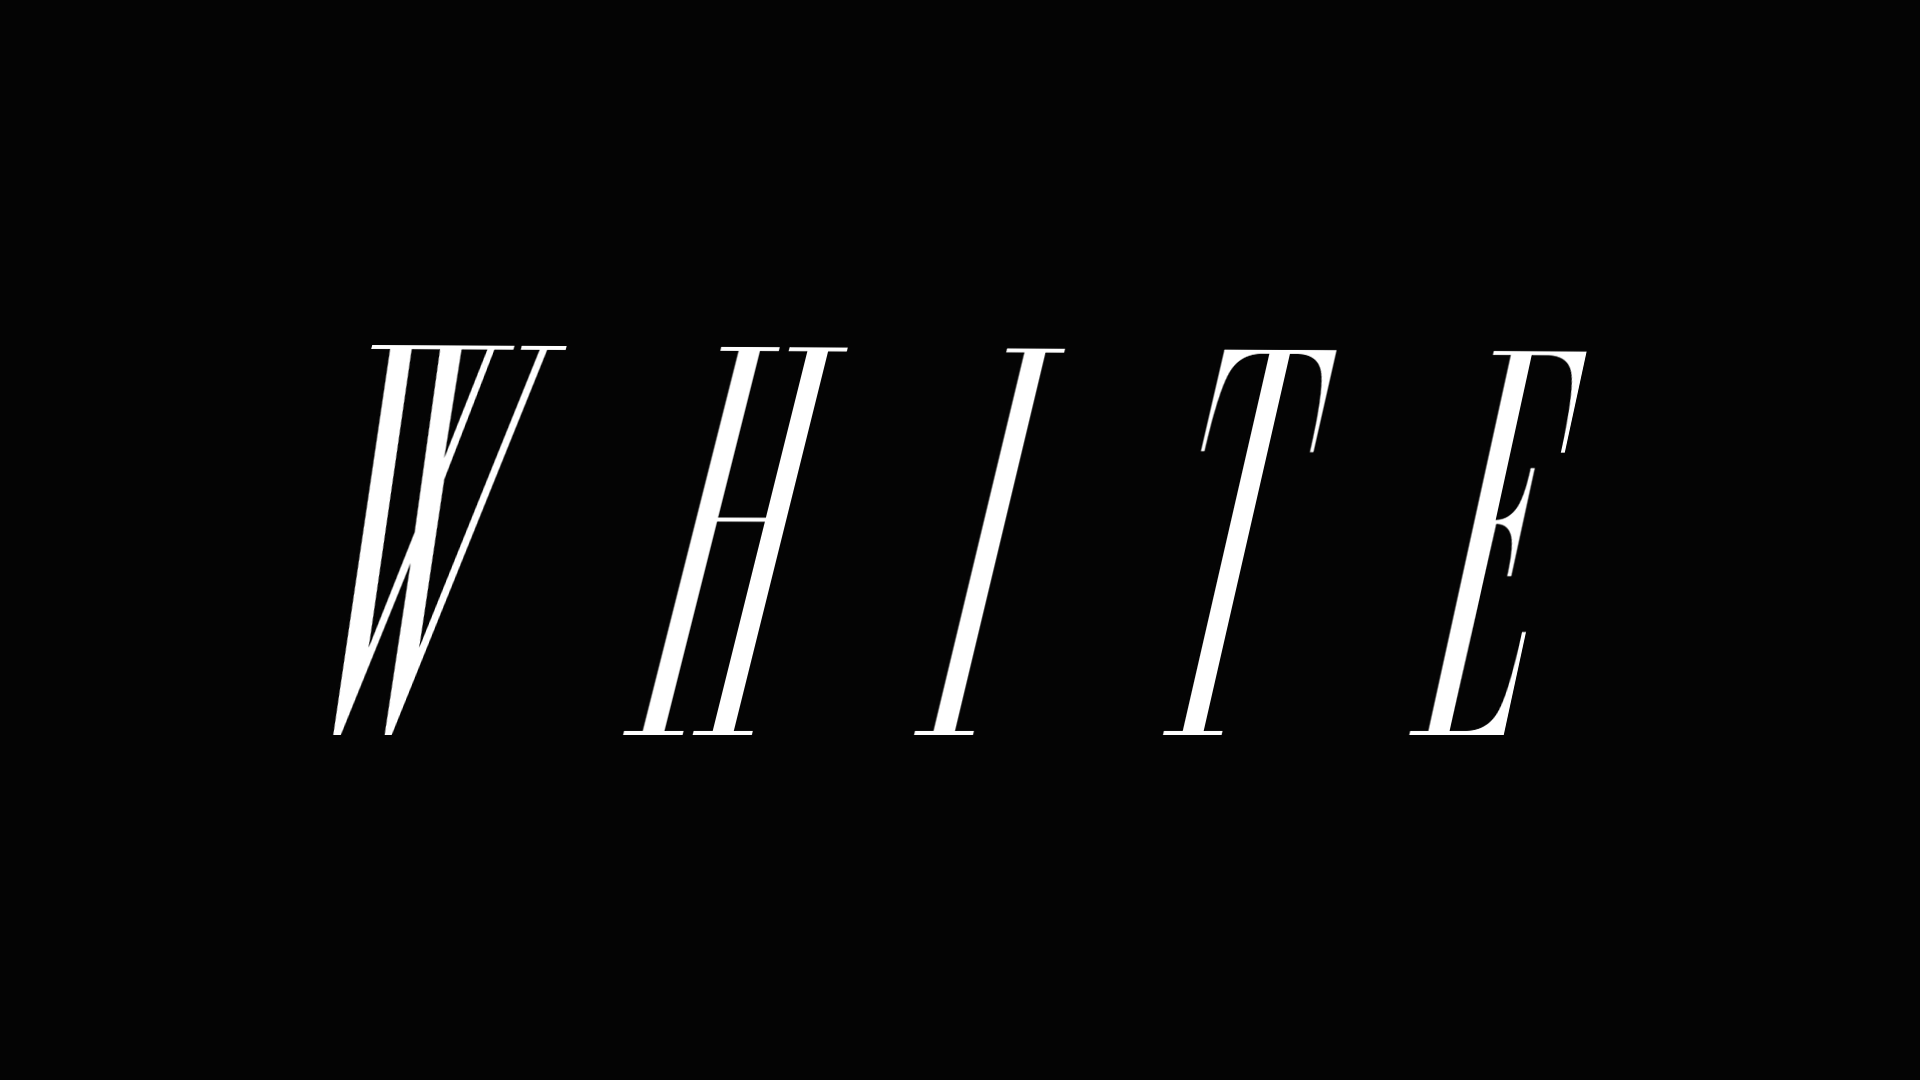 Off White Wallpapers Wallpaper Cave HD Wallpapers Download Free Images Wallpaper [1000image.com]